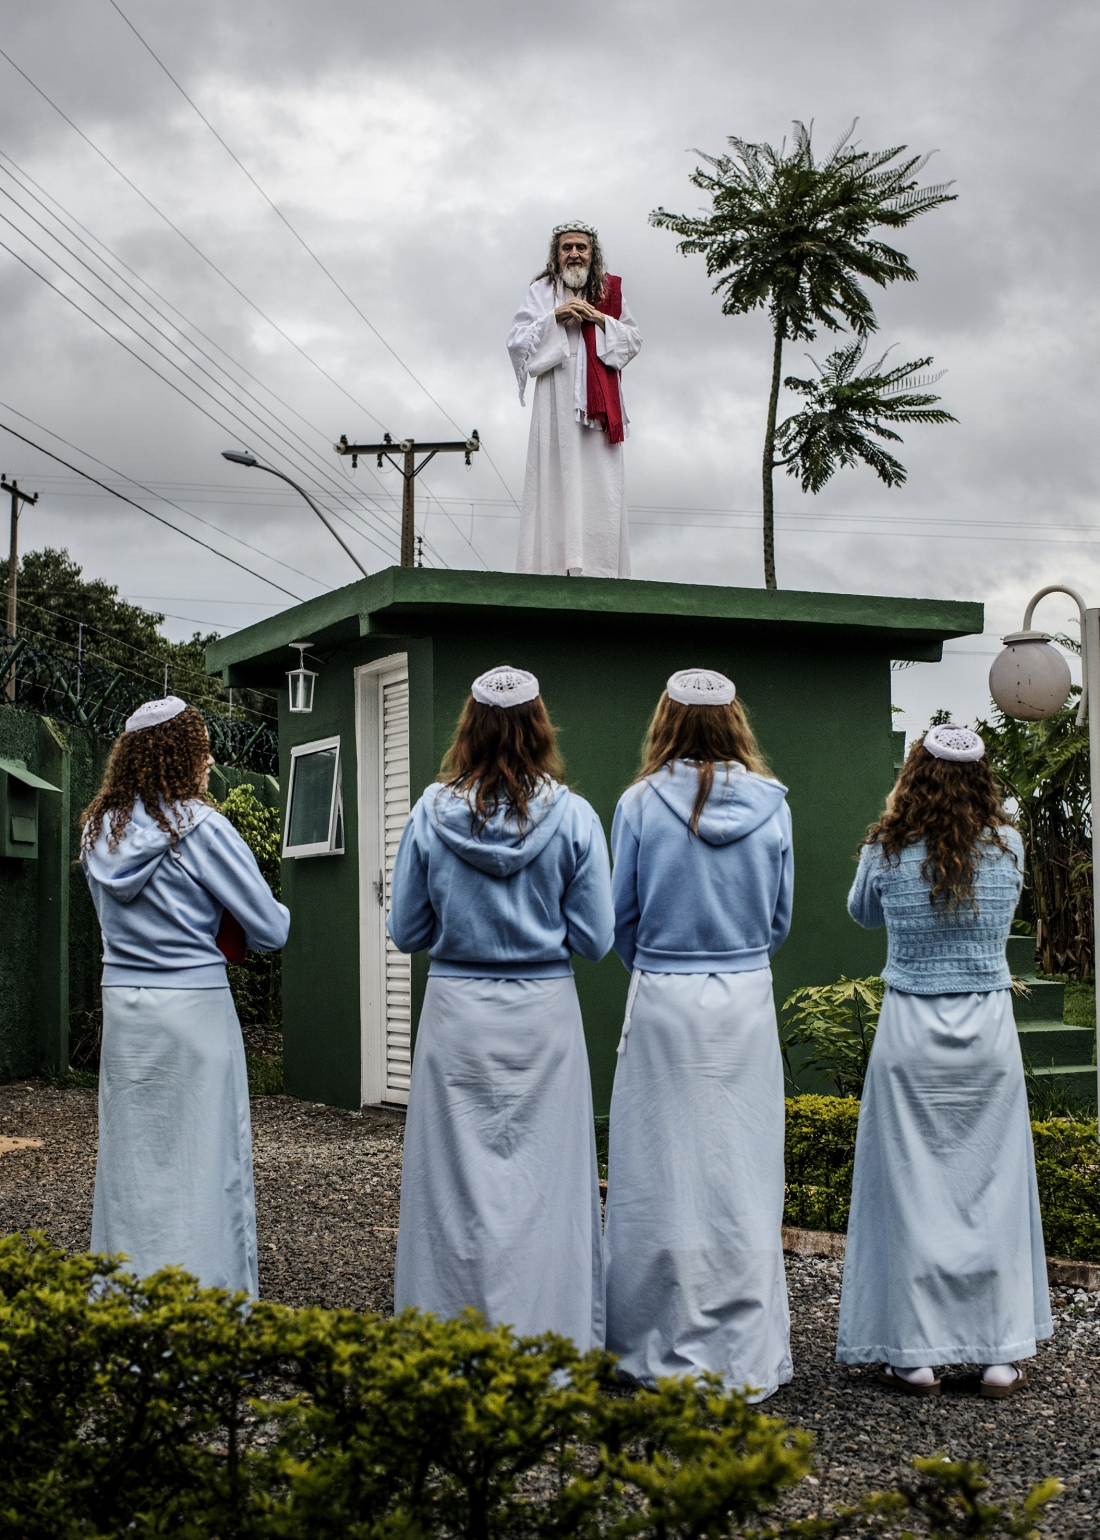 INRI Cristo preaches to his followers from the top of the compound guardhouse. The disciples live a quiet and secluded life inside the compound, growing most of their own food and focussing on INRI's mission. Brazil, 2014 | © Jonas Bendiksen/ Magnum Photos